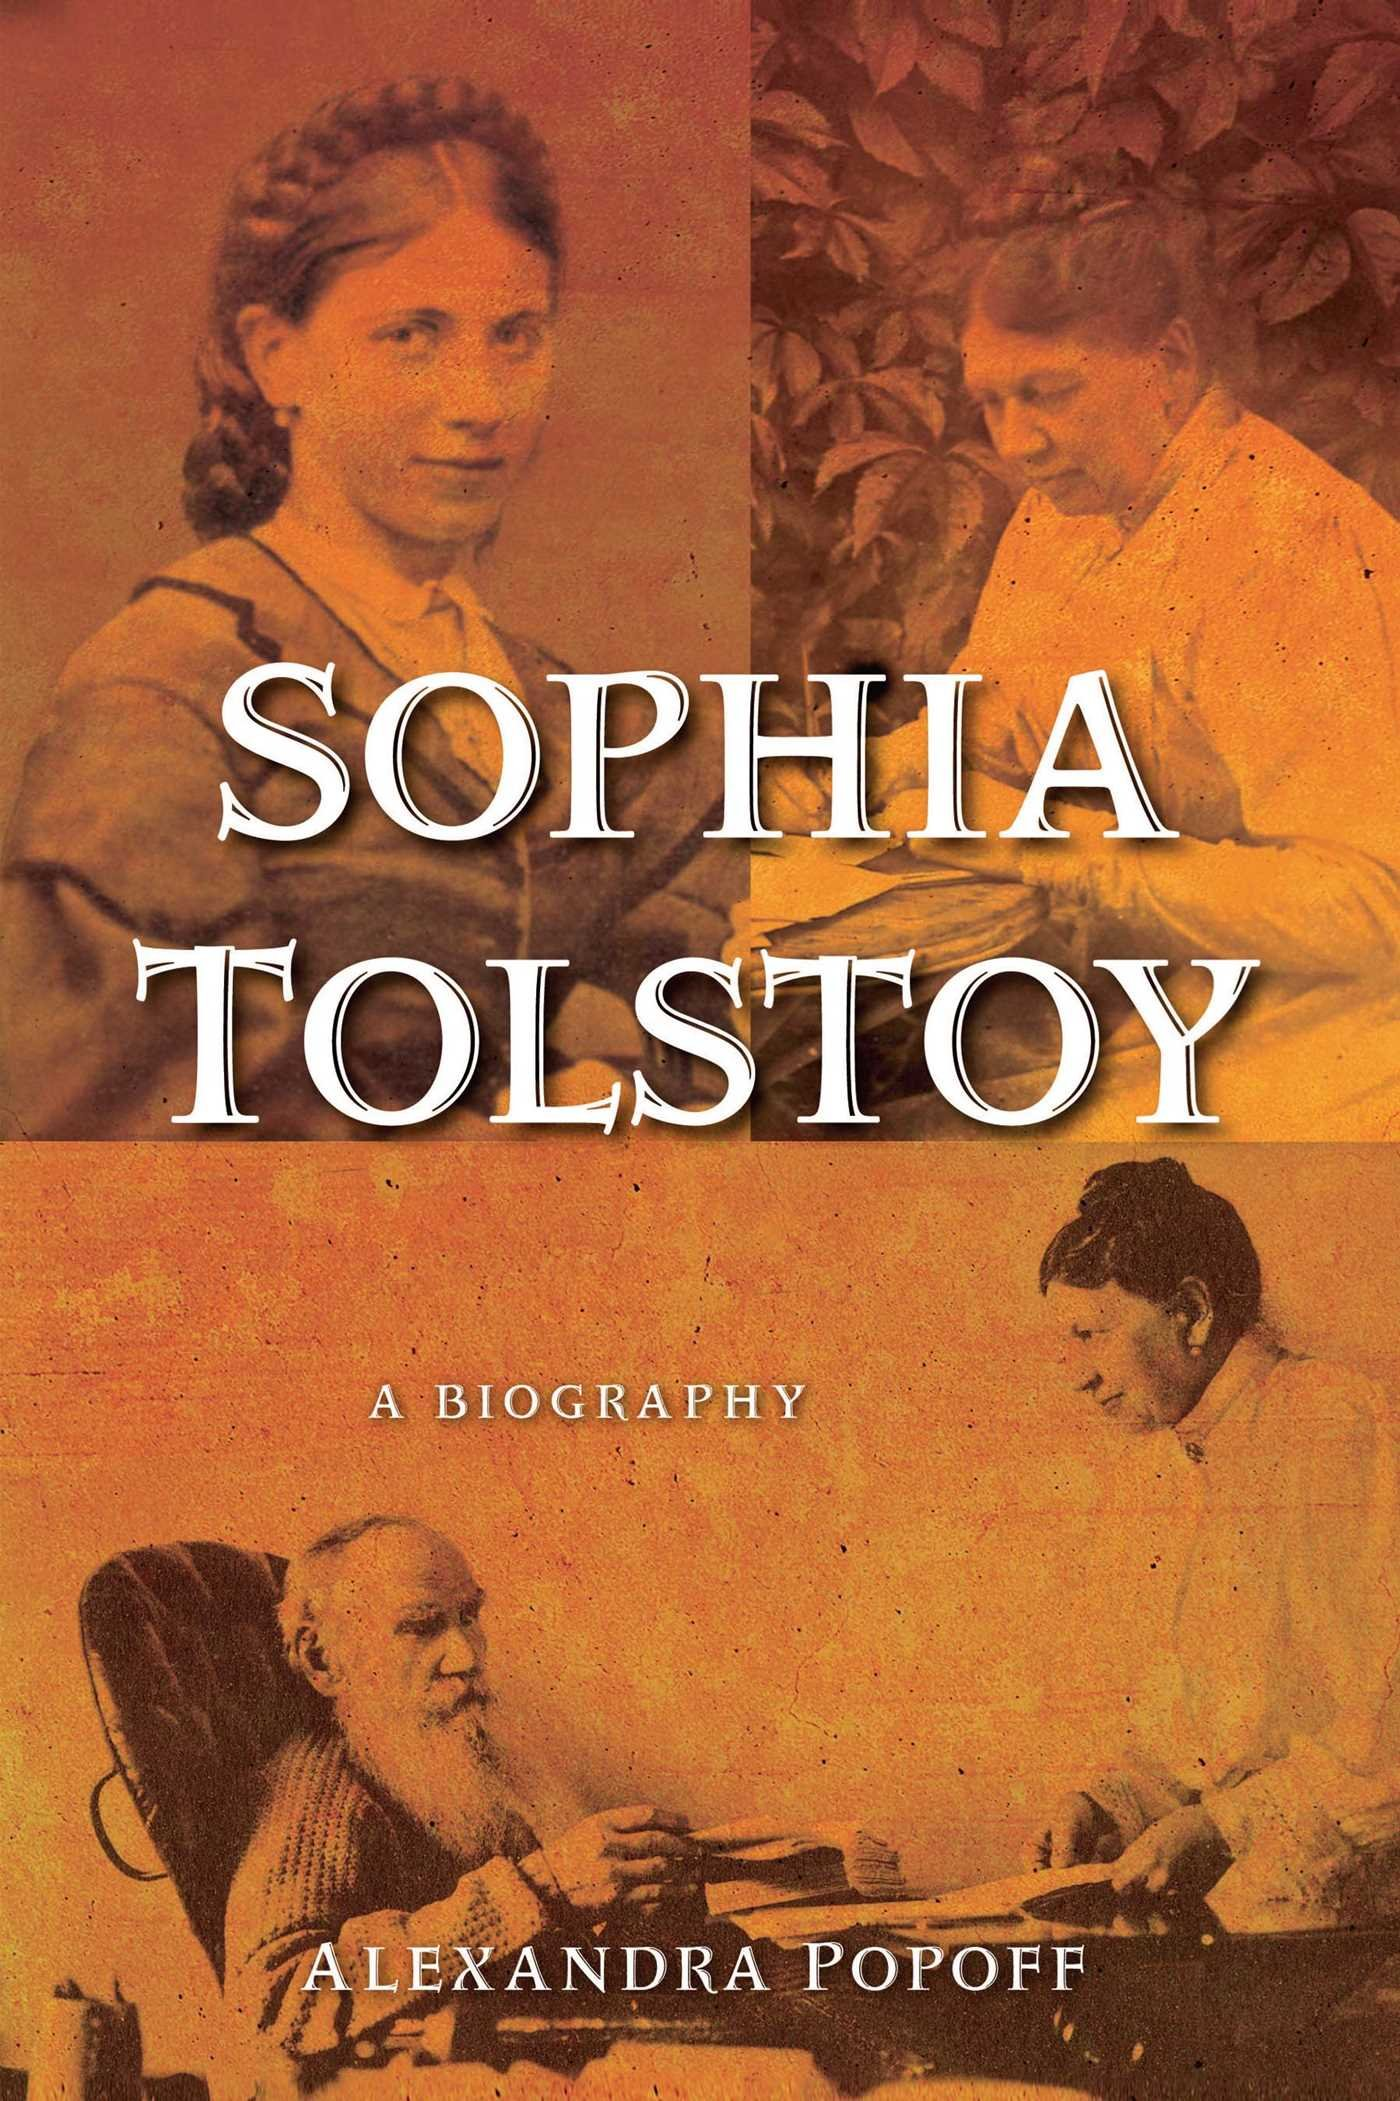 tolstoy biography movie posters